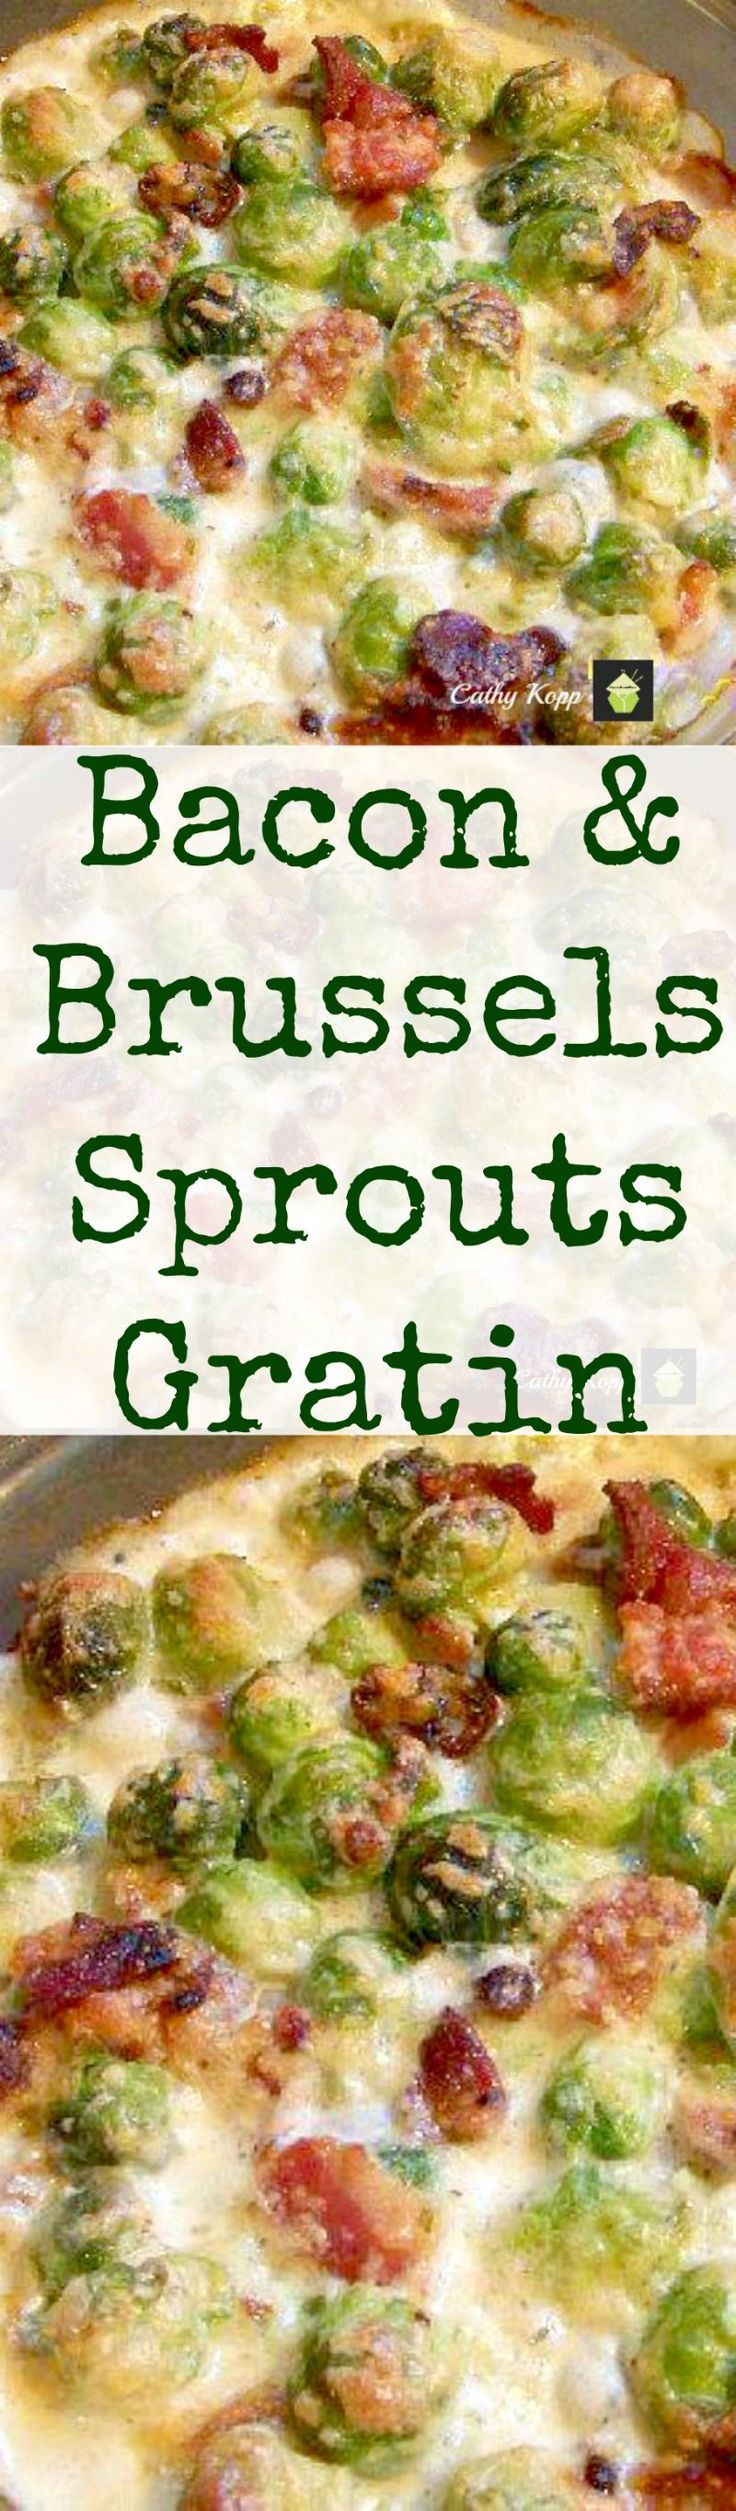 Bacon and Brussels Sprouts Gratin. Bacon, cheese and Brussels Sprouts all baked in a creamy sauce. Very easy recipe and of course absolutely delicious! #Thanksgiving #Christmas | Lovefoodies.com